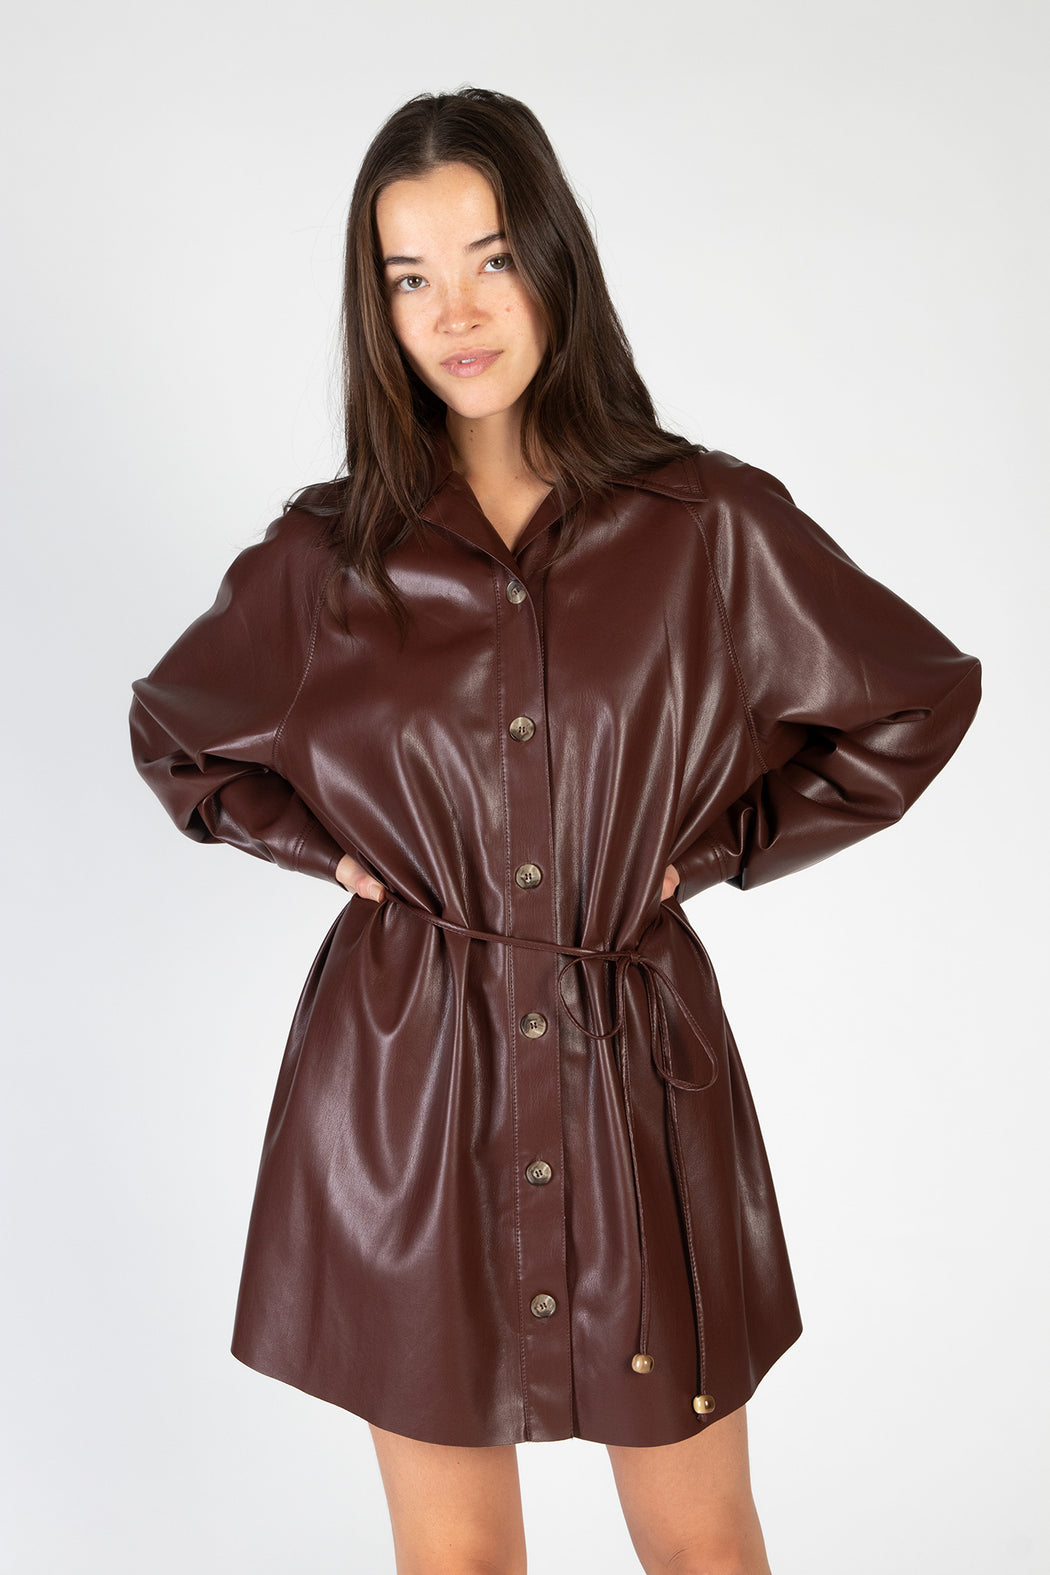 Nanushka-Joy-Vegan-Leather-Dress-Plum